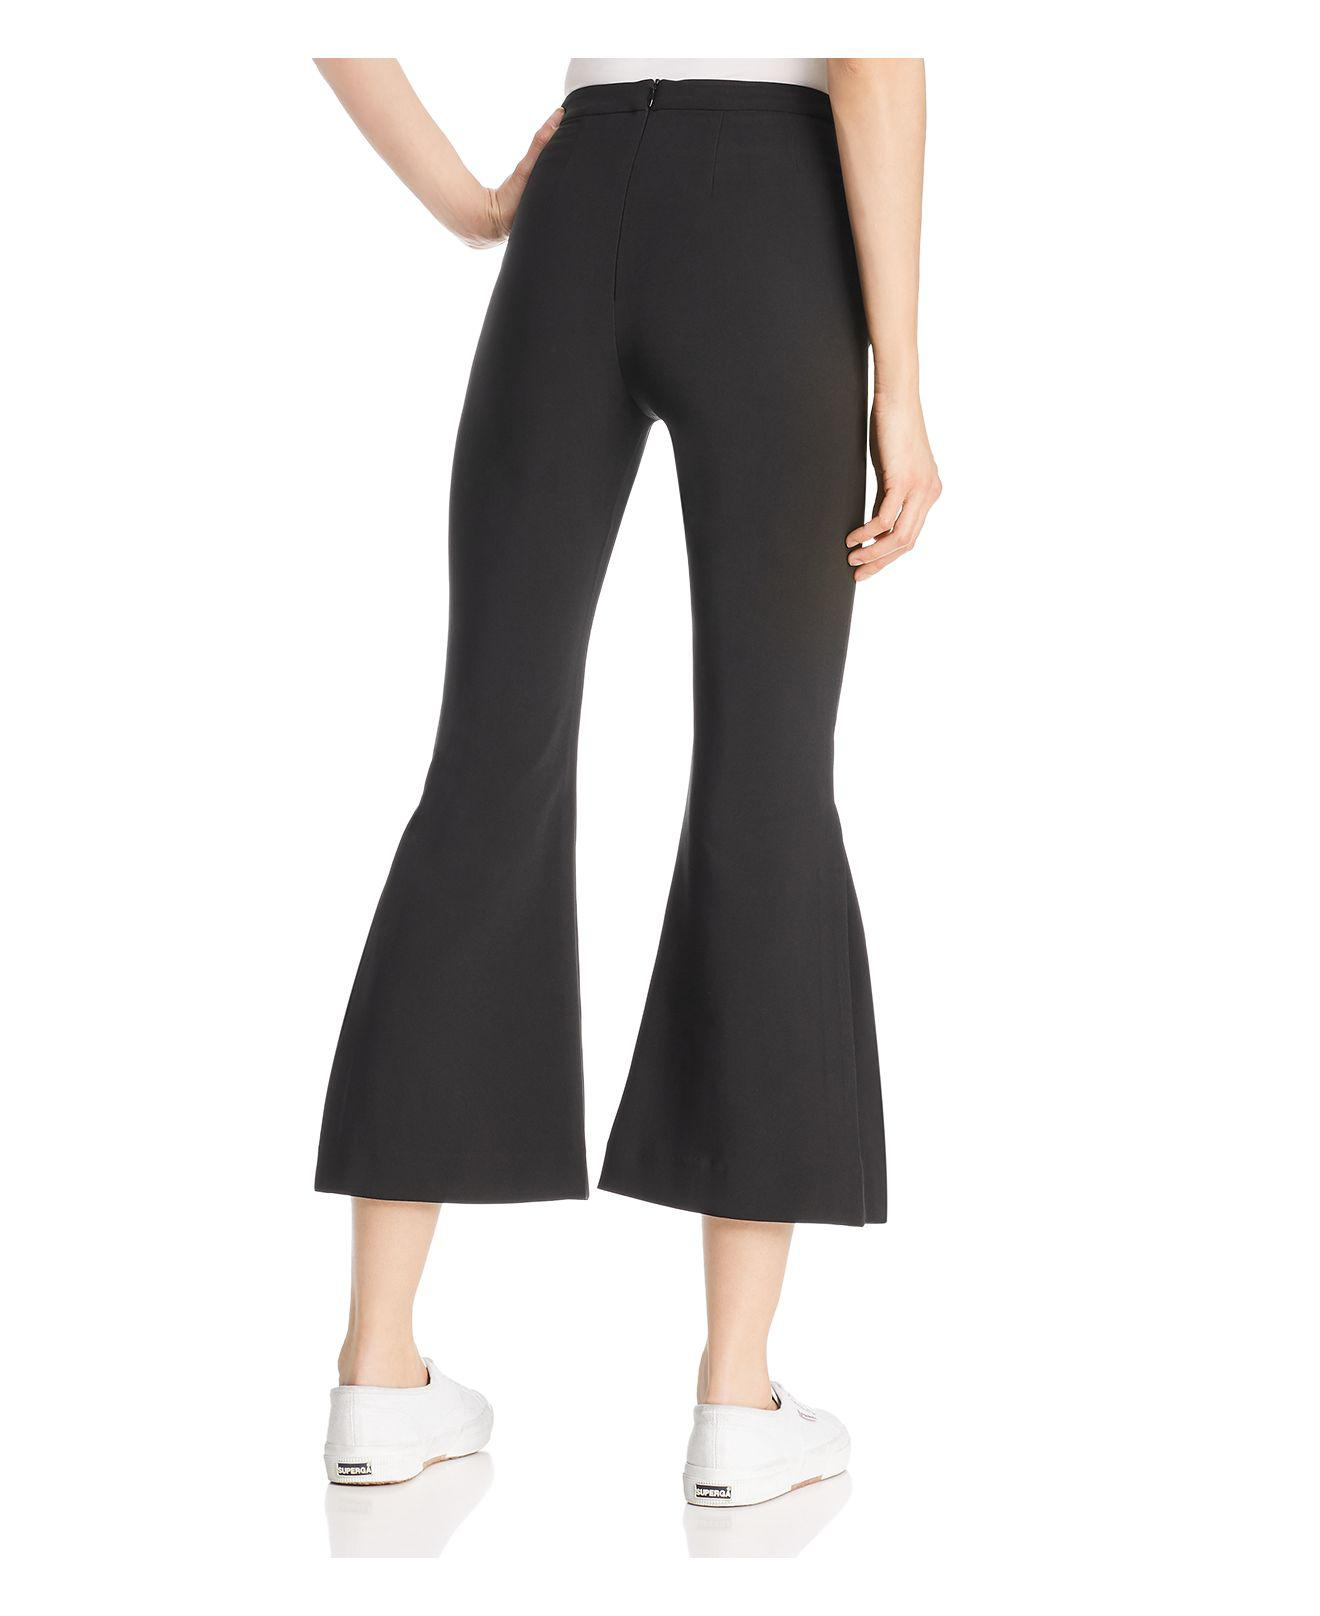 Huntr Cropped Trousers - Black Finders Keepers UPzcX33Vpg